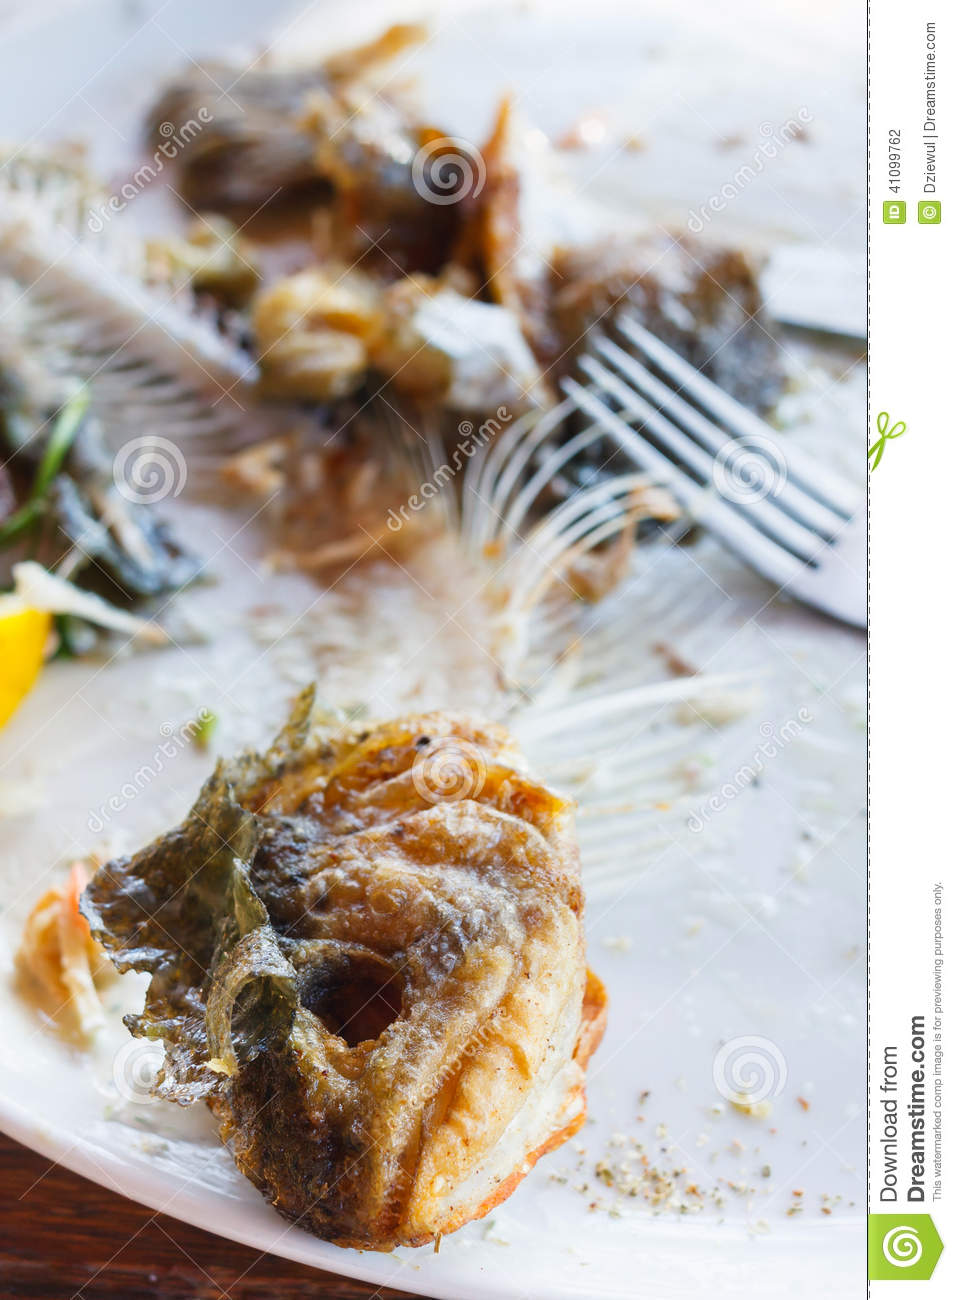 Fish bones on a plate stock photo image of background for Fish and bone restaurant